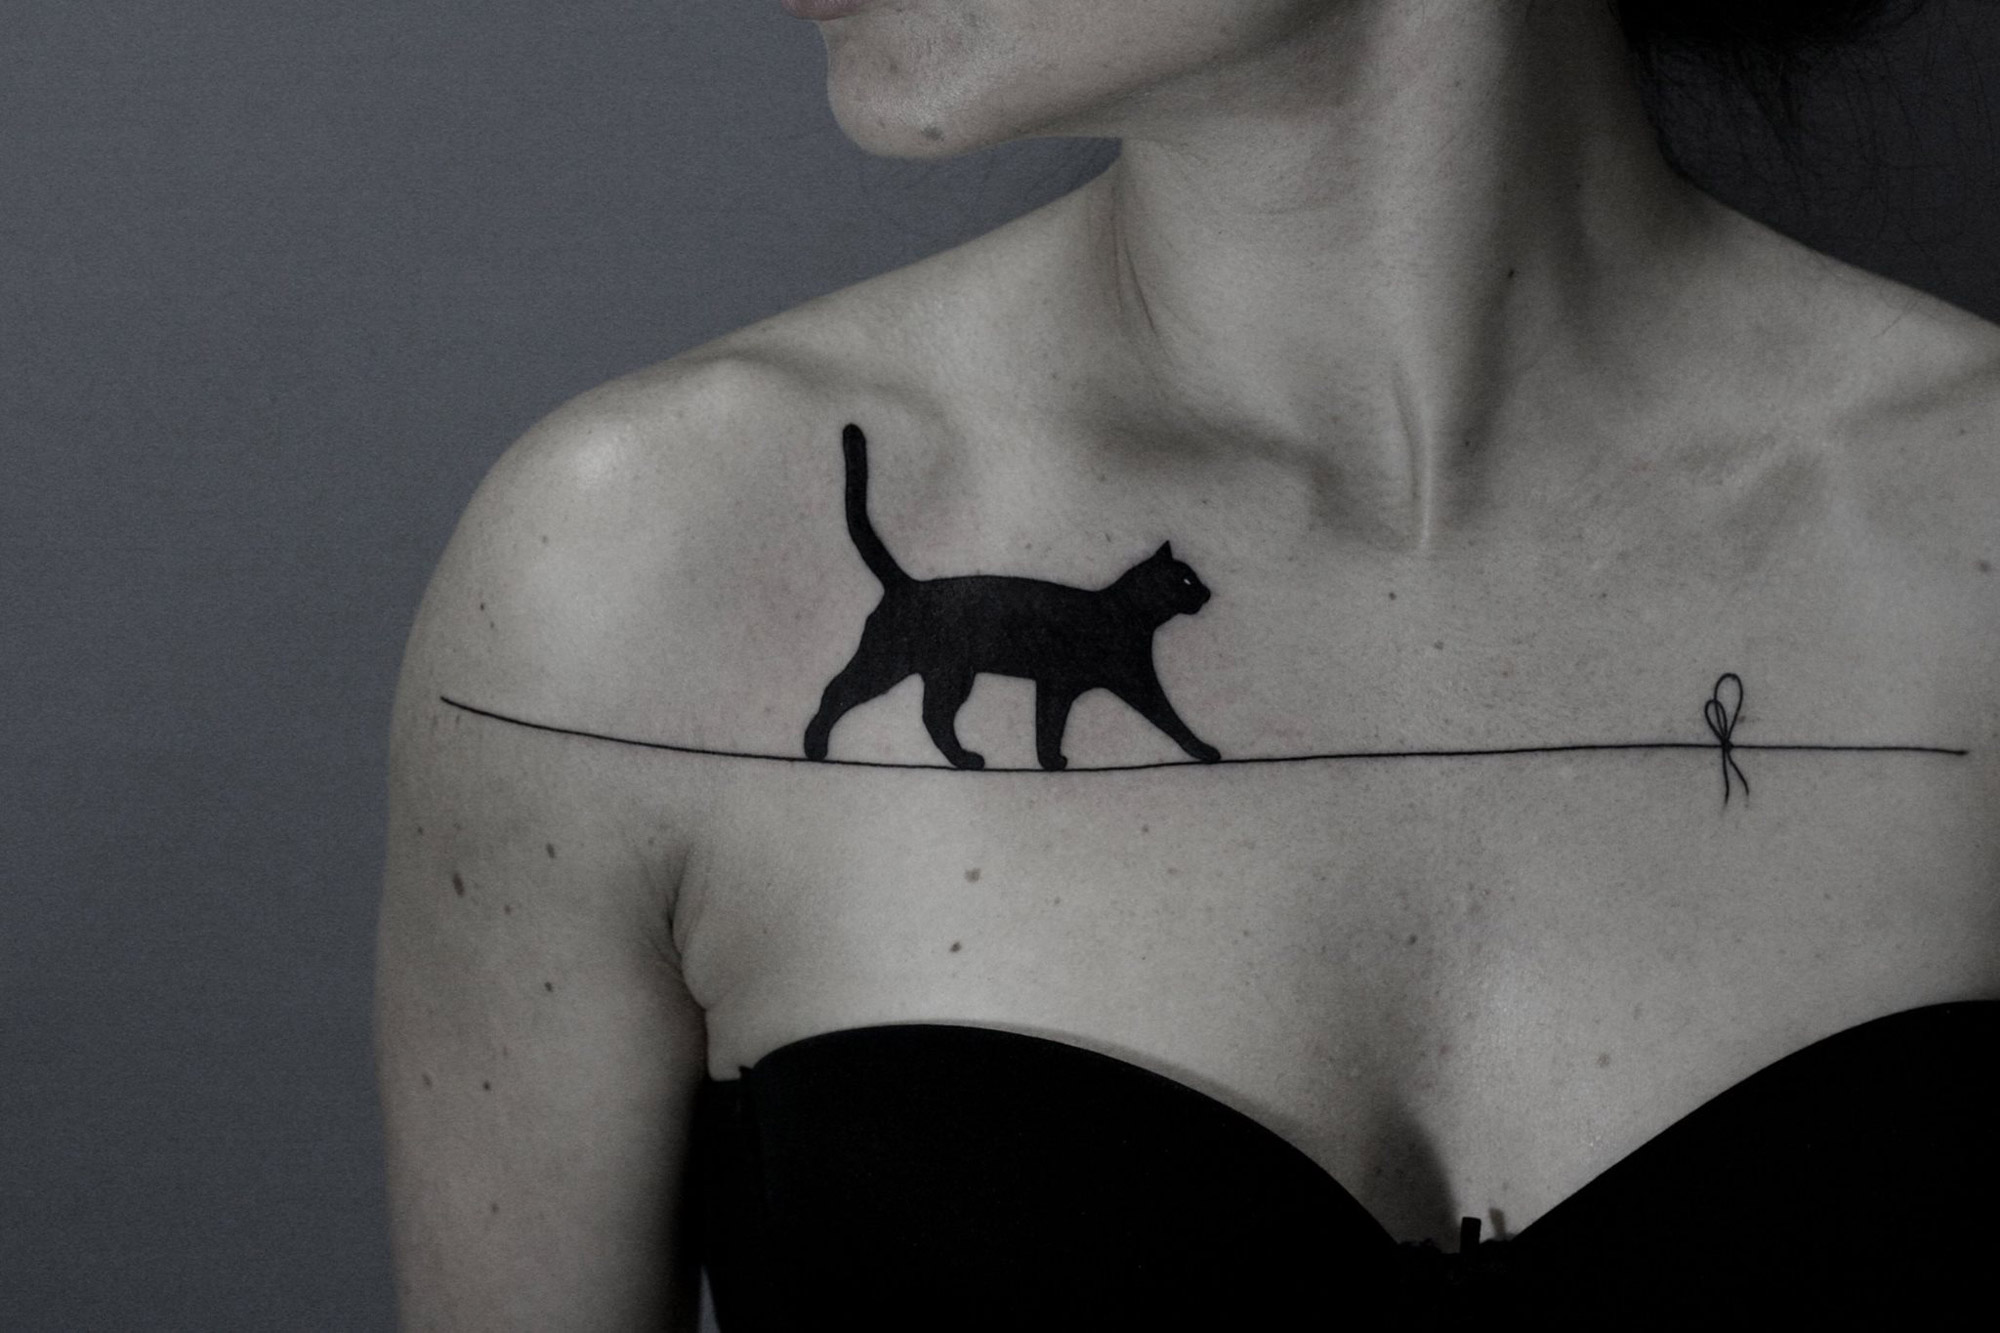 Simple, Ingenious, and Amusing: Blackwork Tattoos by Ilya Brezinski